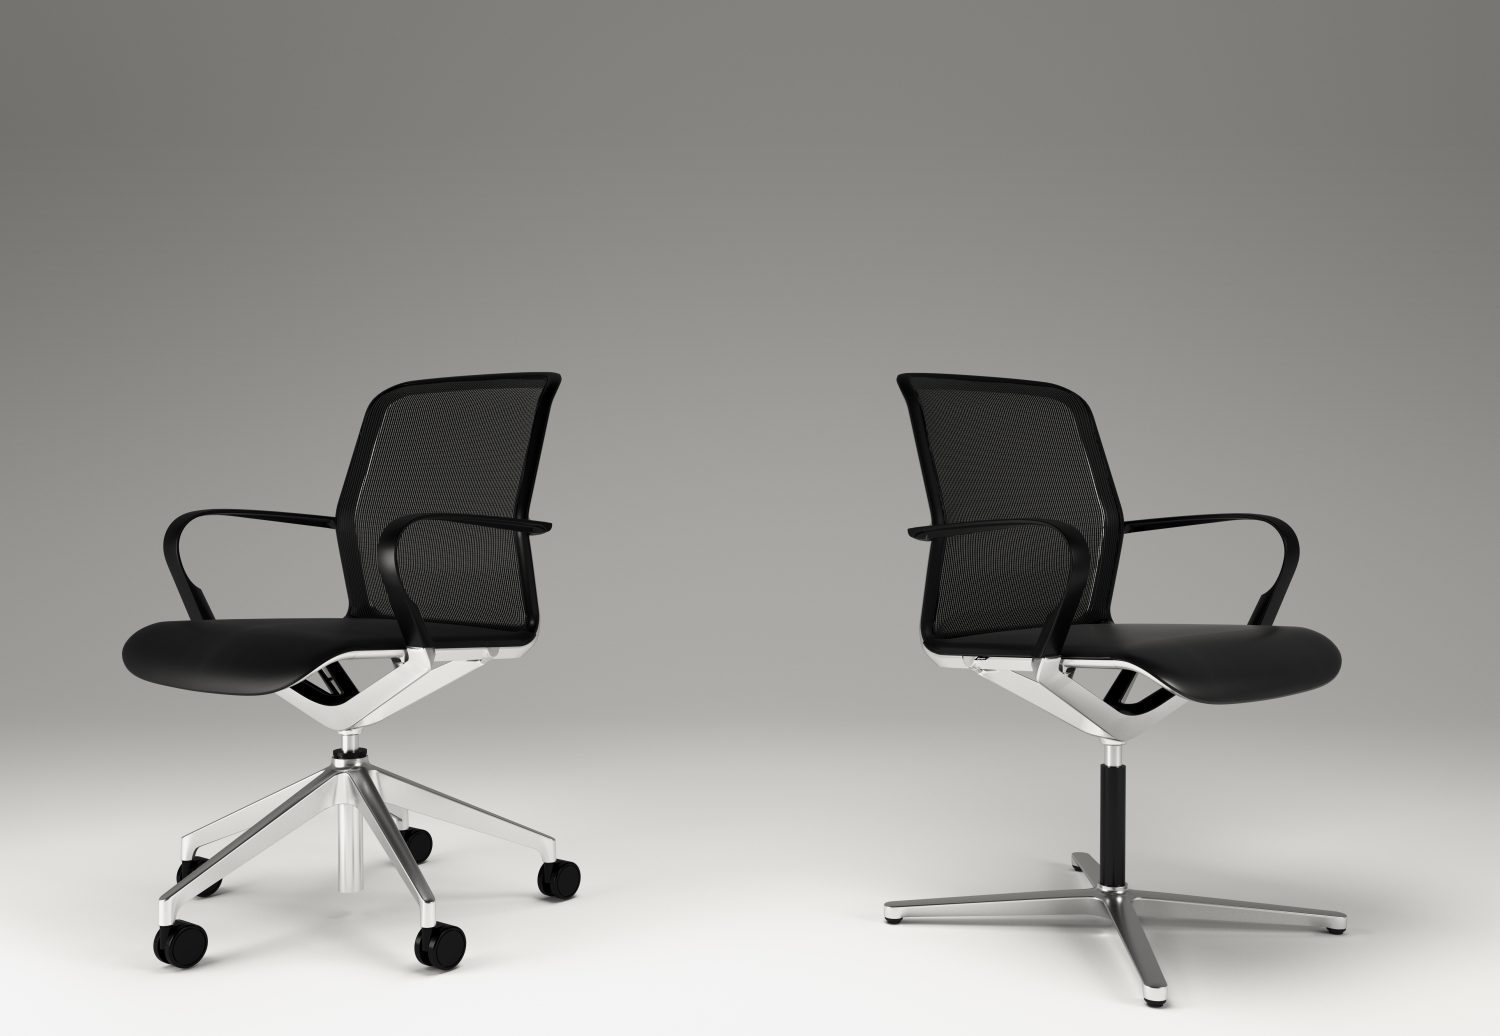 FILO_2_CHAIRS-1500x1036.jpg